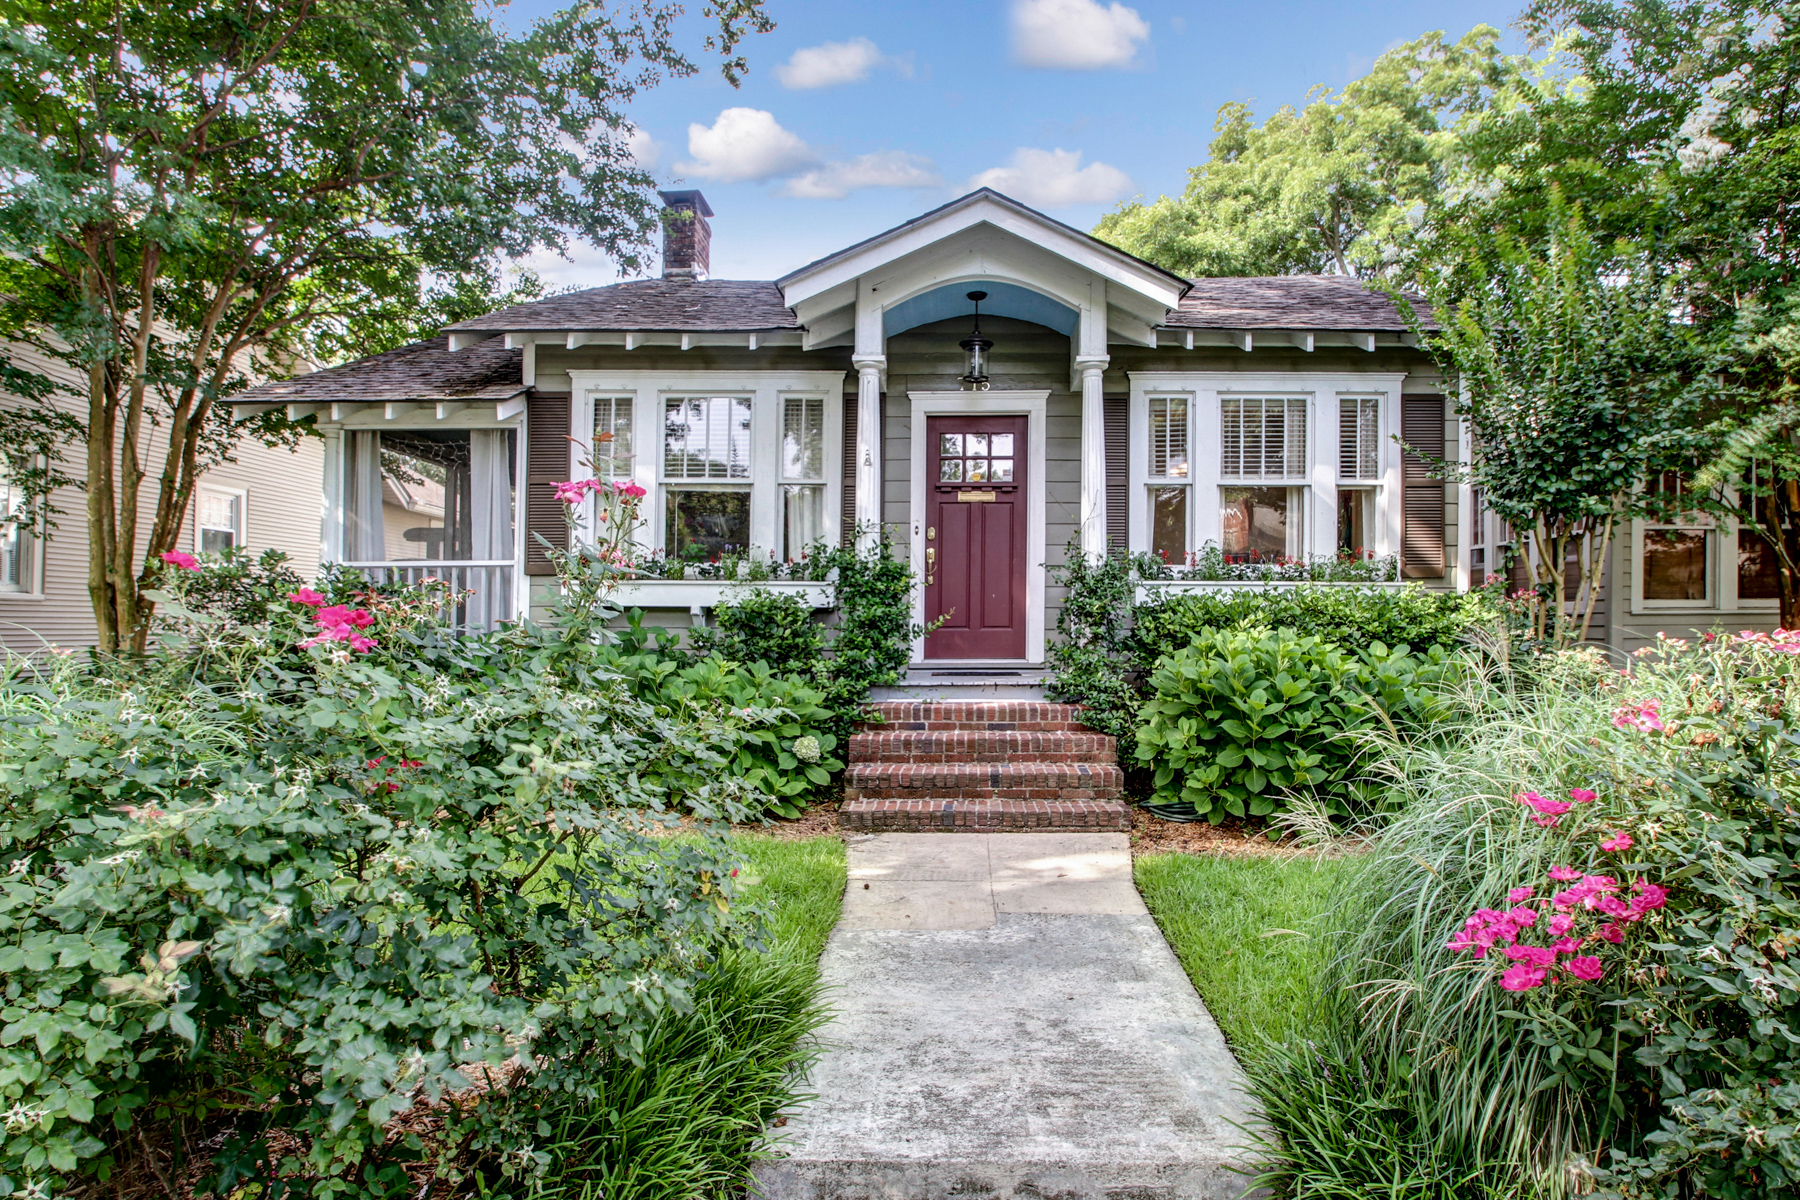 Single Family Home for Sale at 715 East 49th St. Ardsley Park, Savannah, Georgia 31405 United States